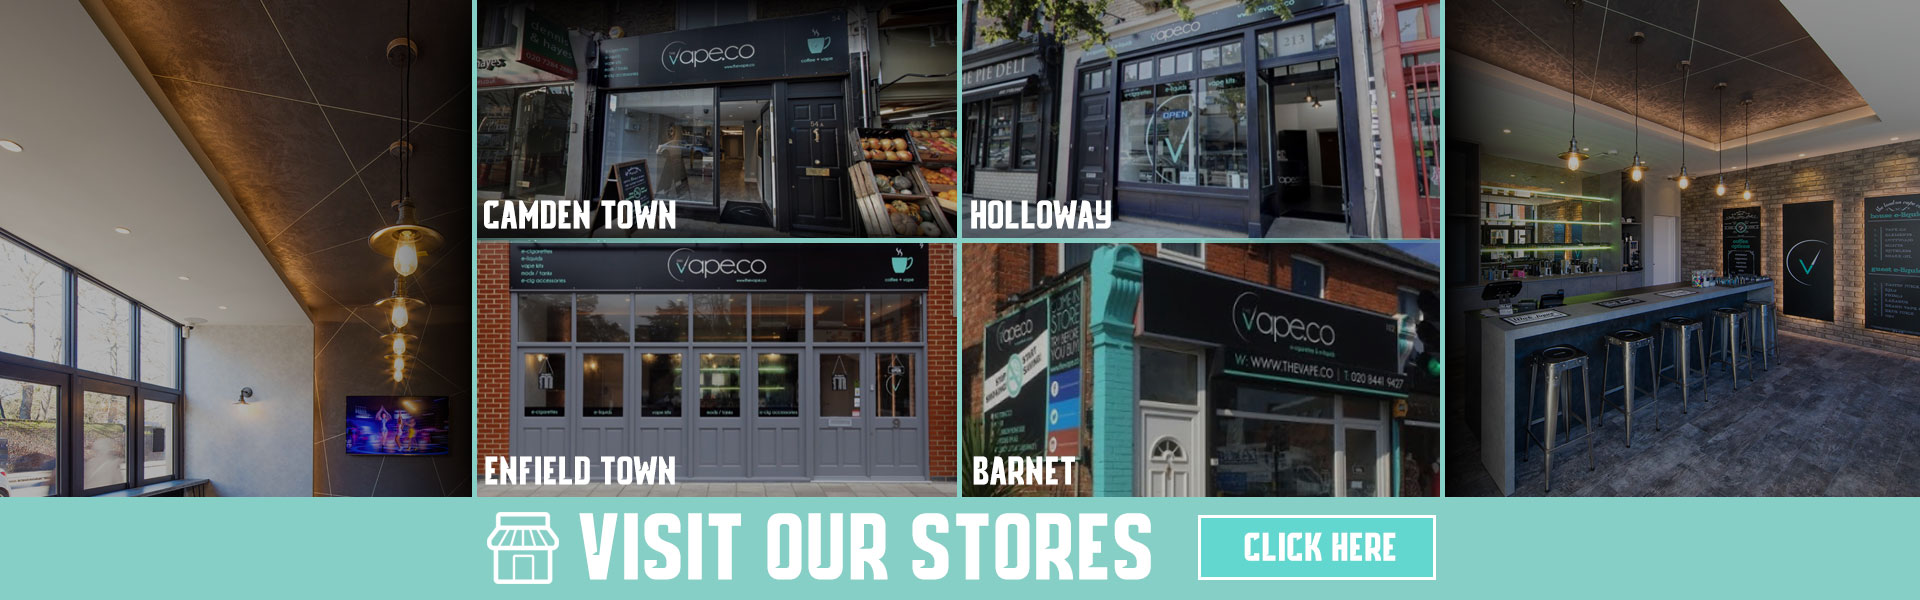 Visit Our London Vape Stores